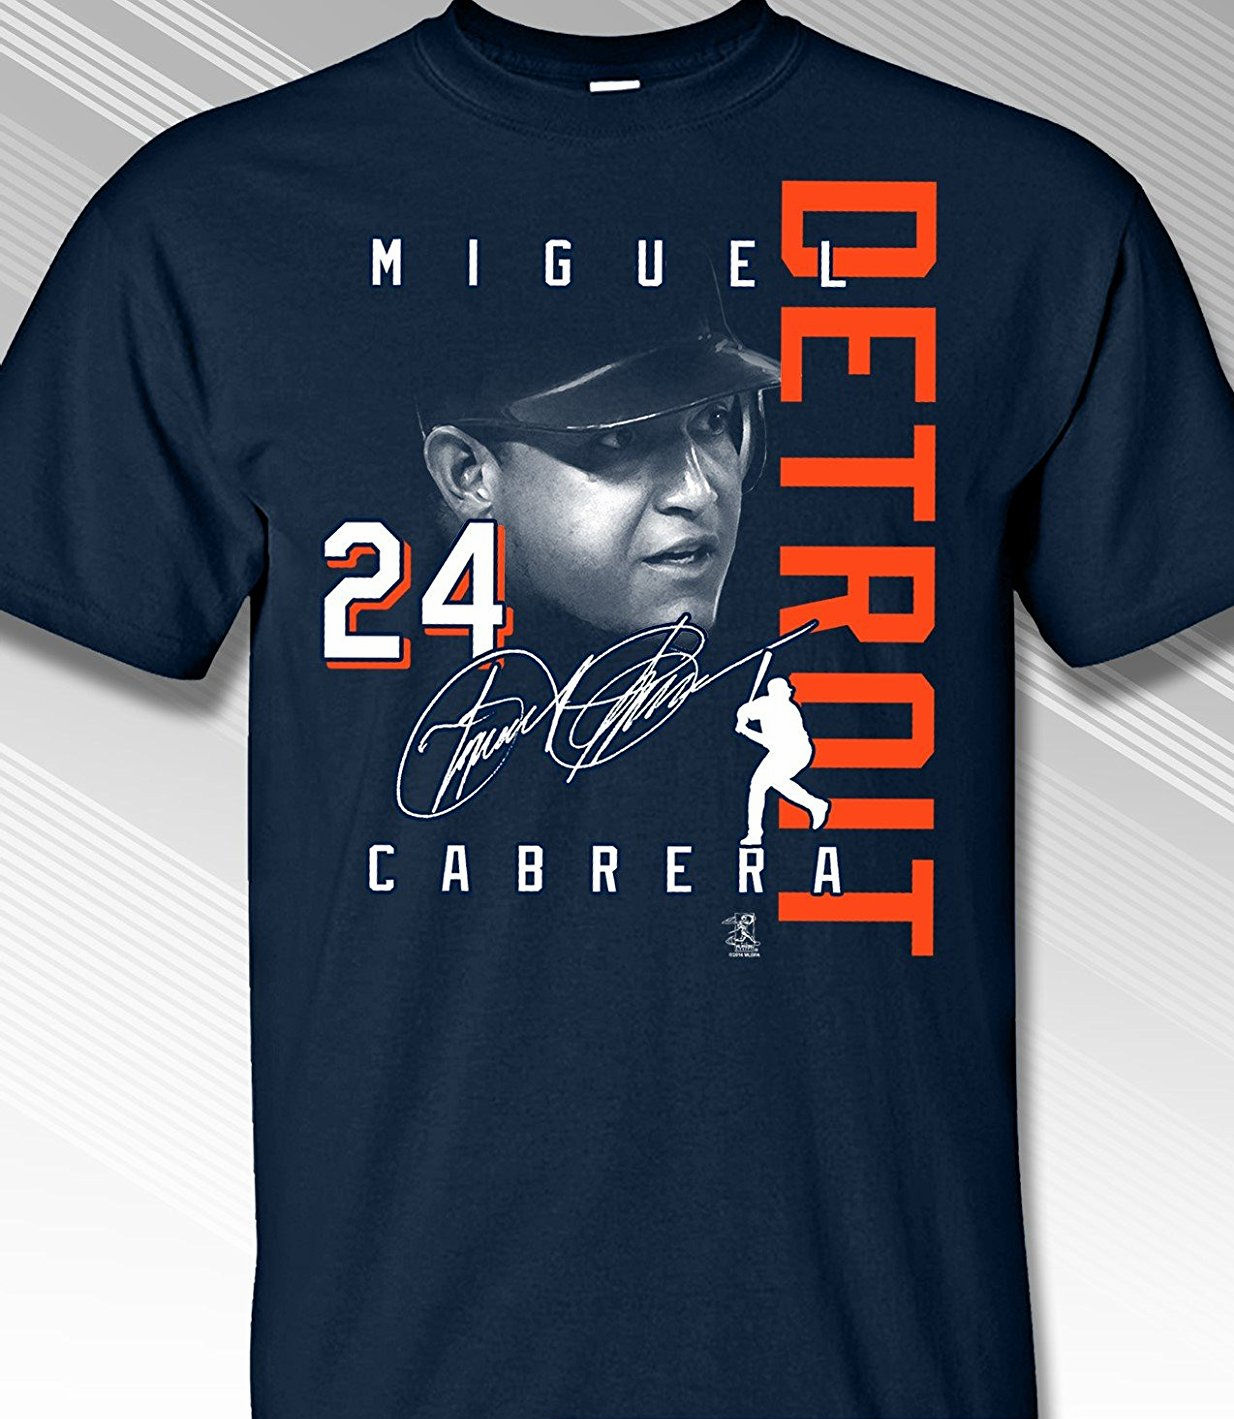 Miguel Cabrera DETROIT Signature T-Shirt<br>Short or Long Sleeve<br>Youth Med to Adult 4X